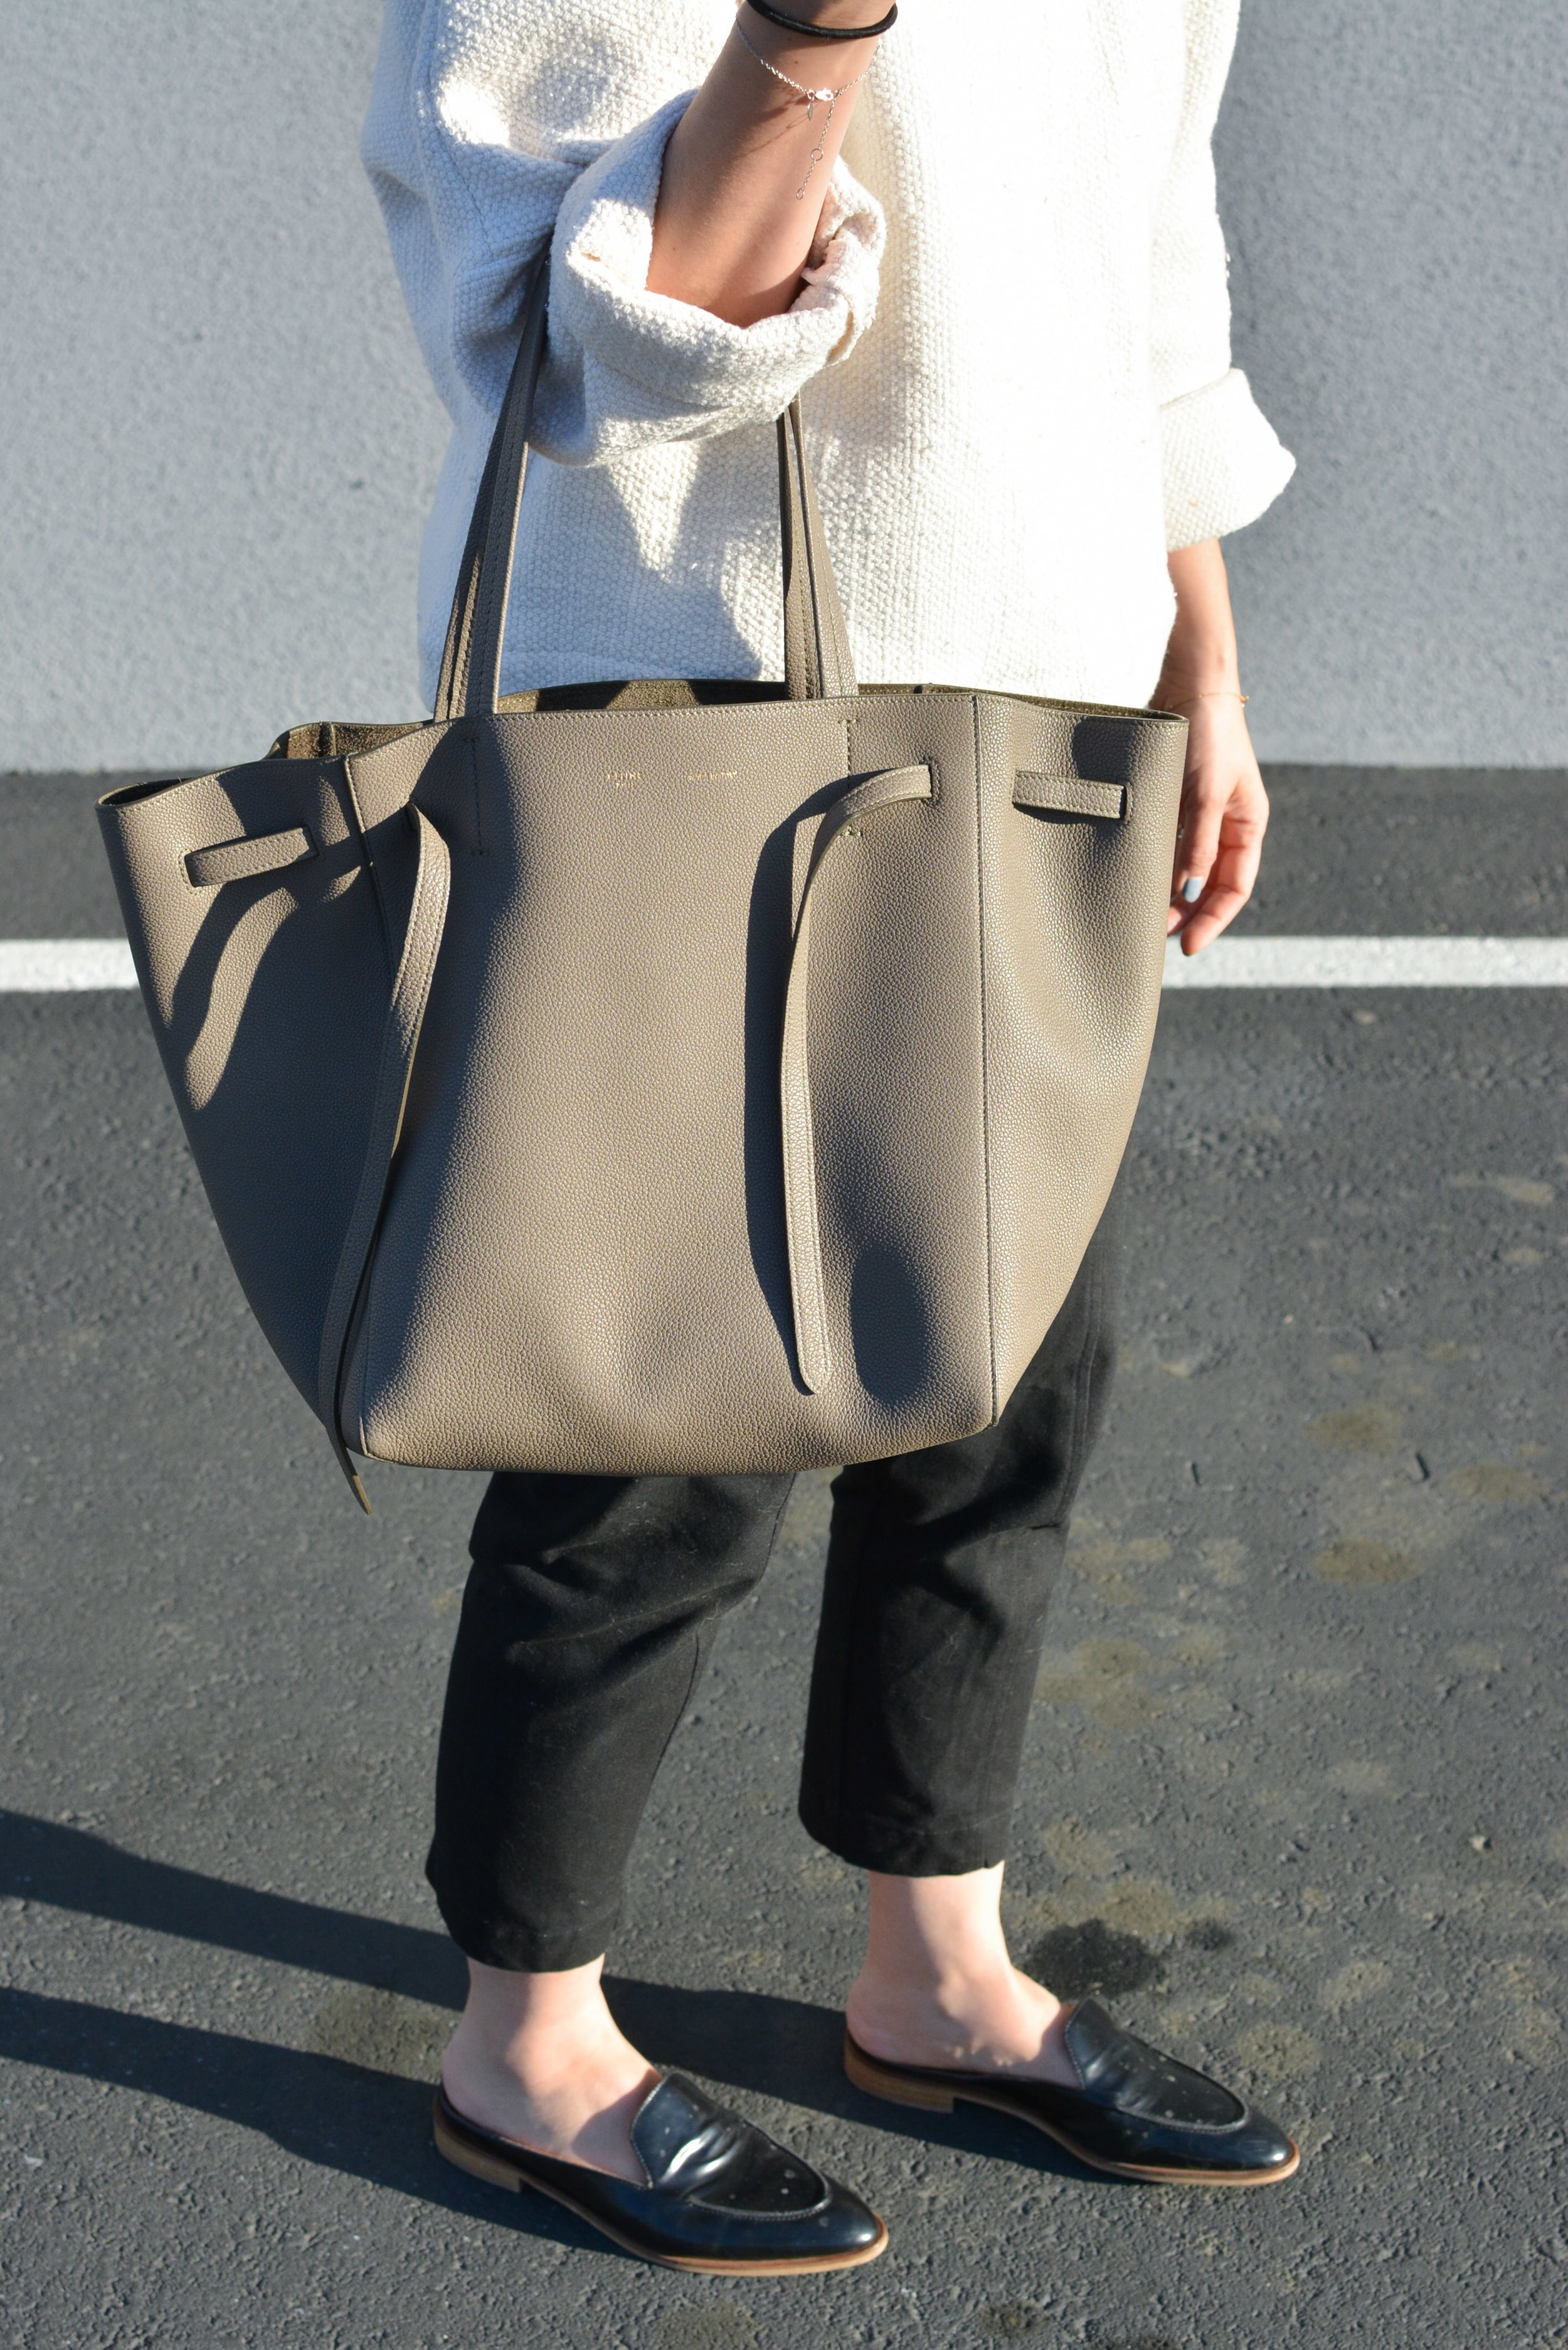 Celine Small Cabas Phantom Tote Review (3 of 3)-min.jpg